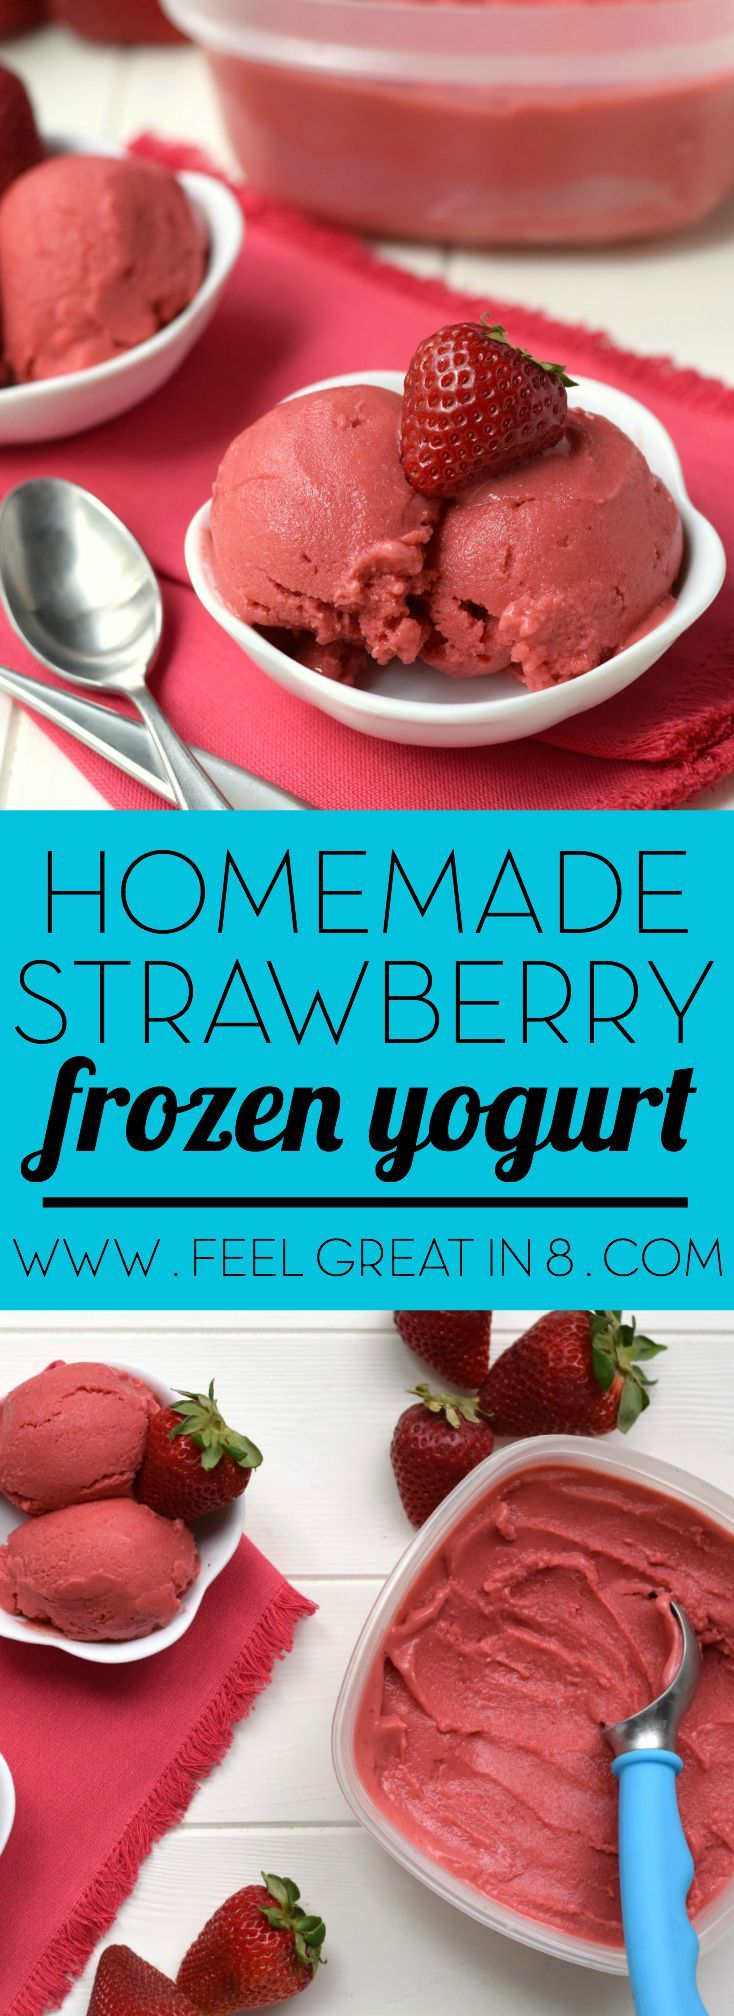 You only need 5 minutes and 4 healthy real food ingredients to make this Homemade Strawberry Frozen Yogurt – No ice cream maker